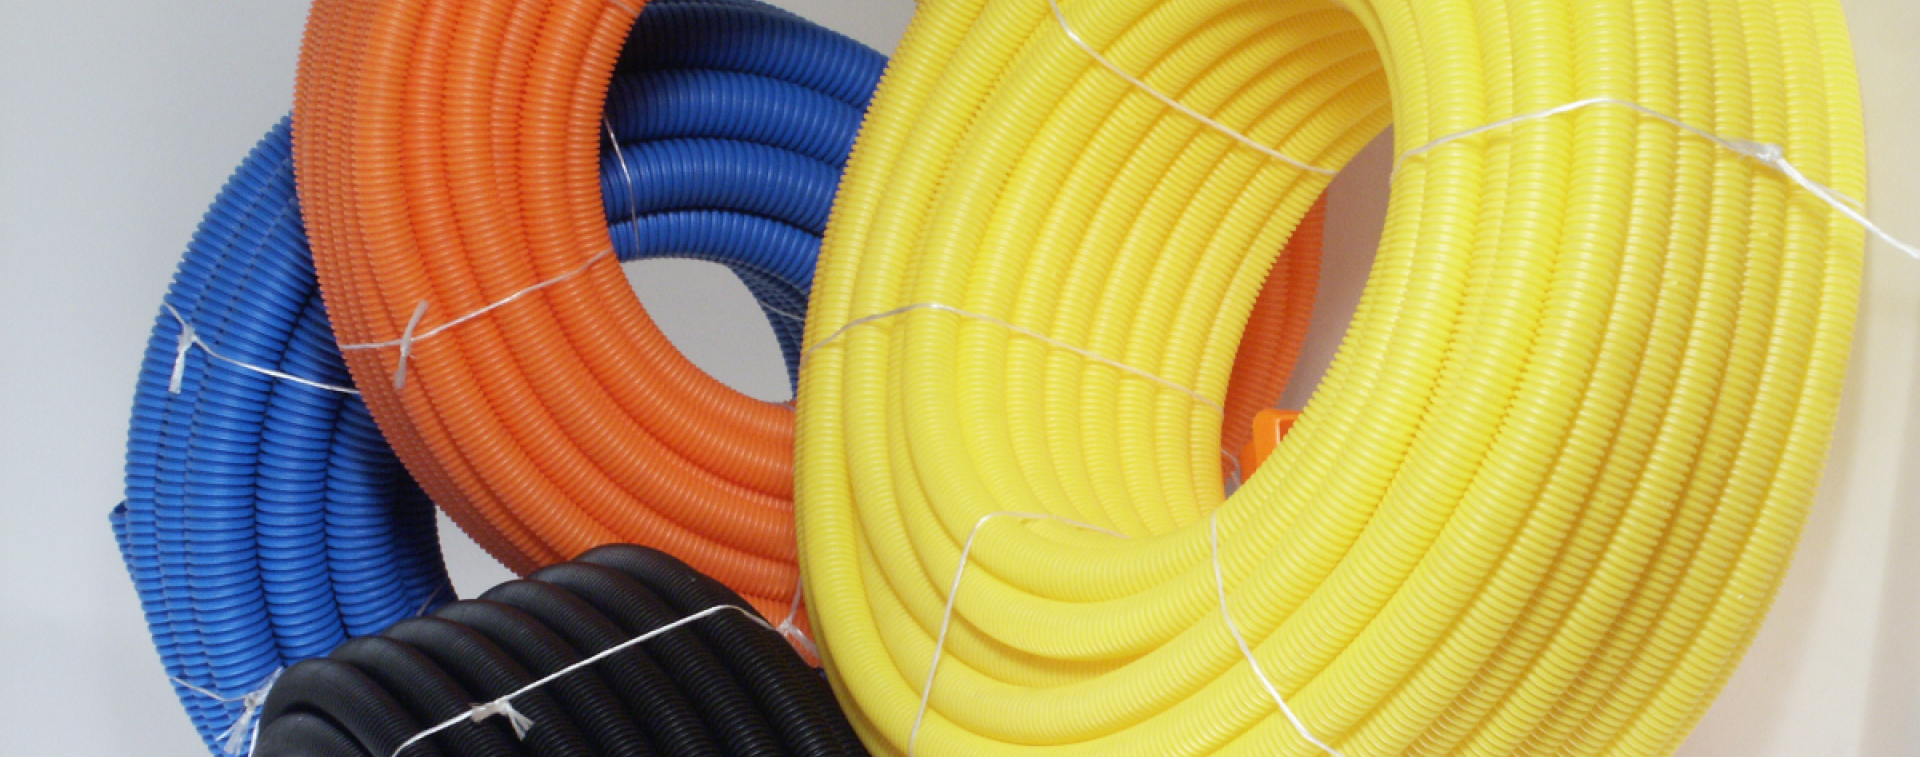 Conduits for electrical installations